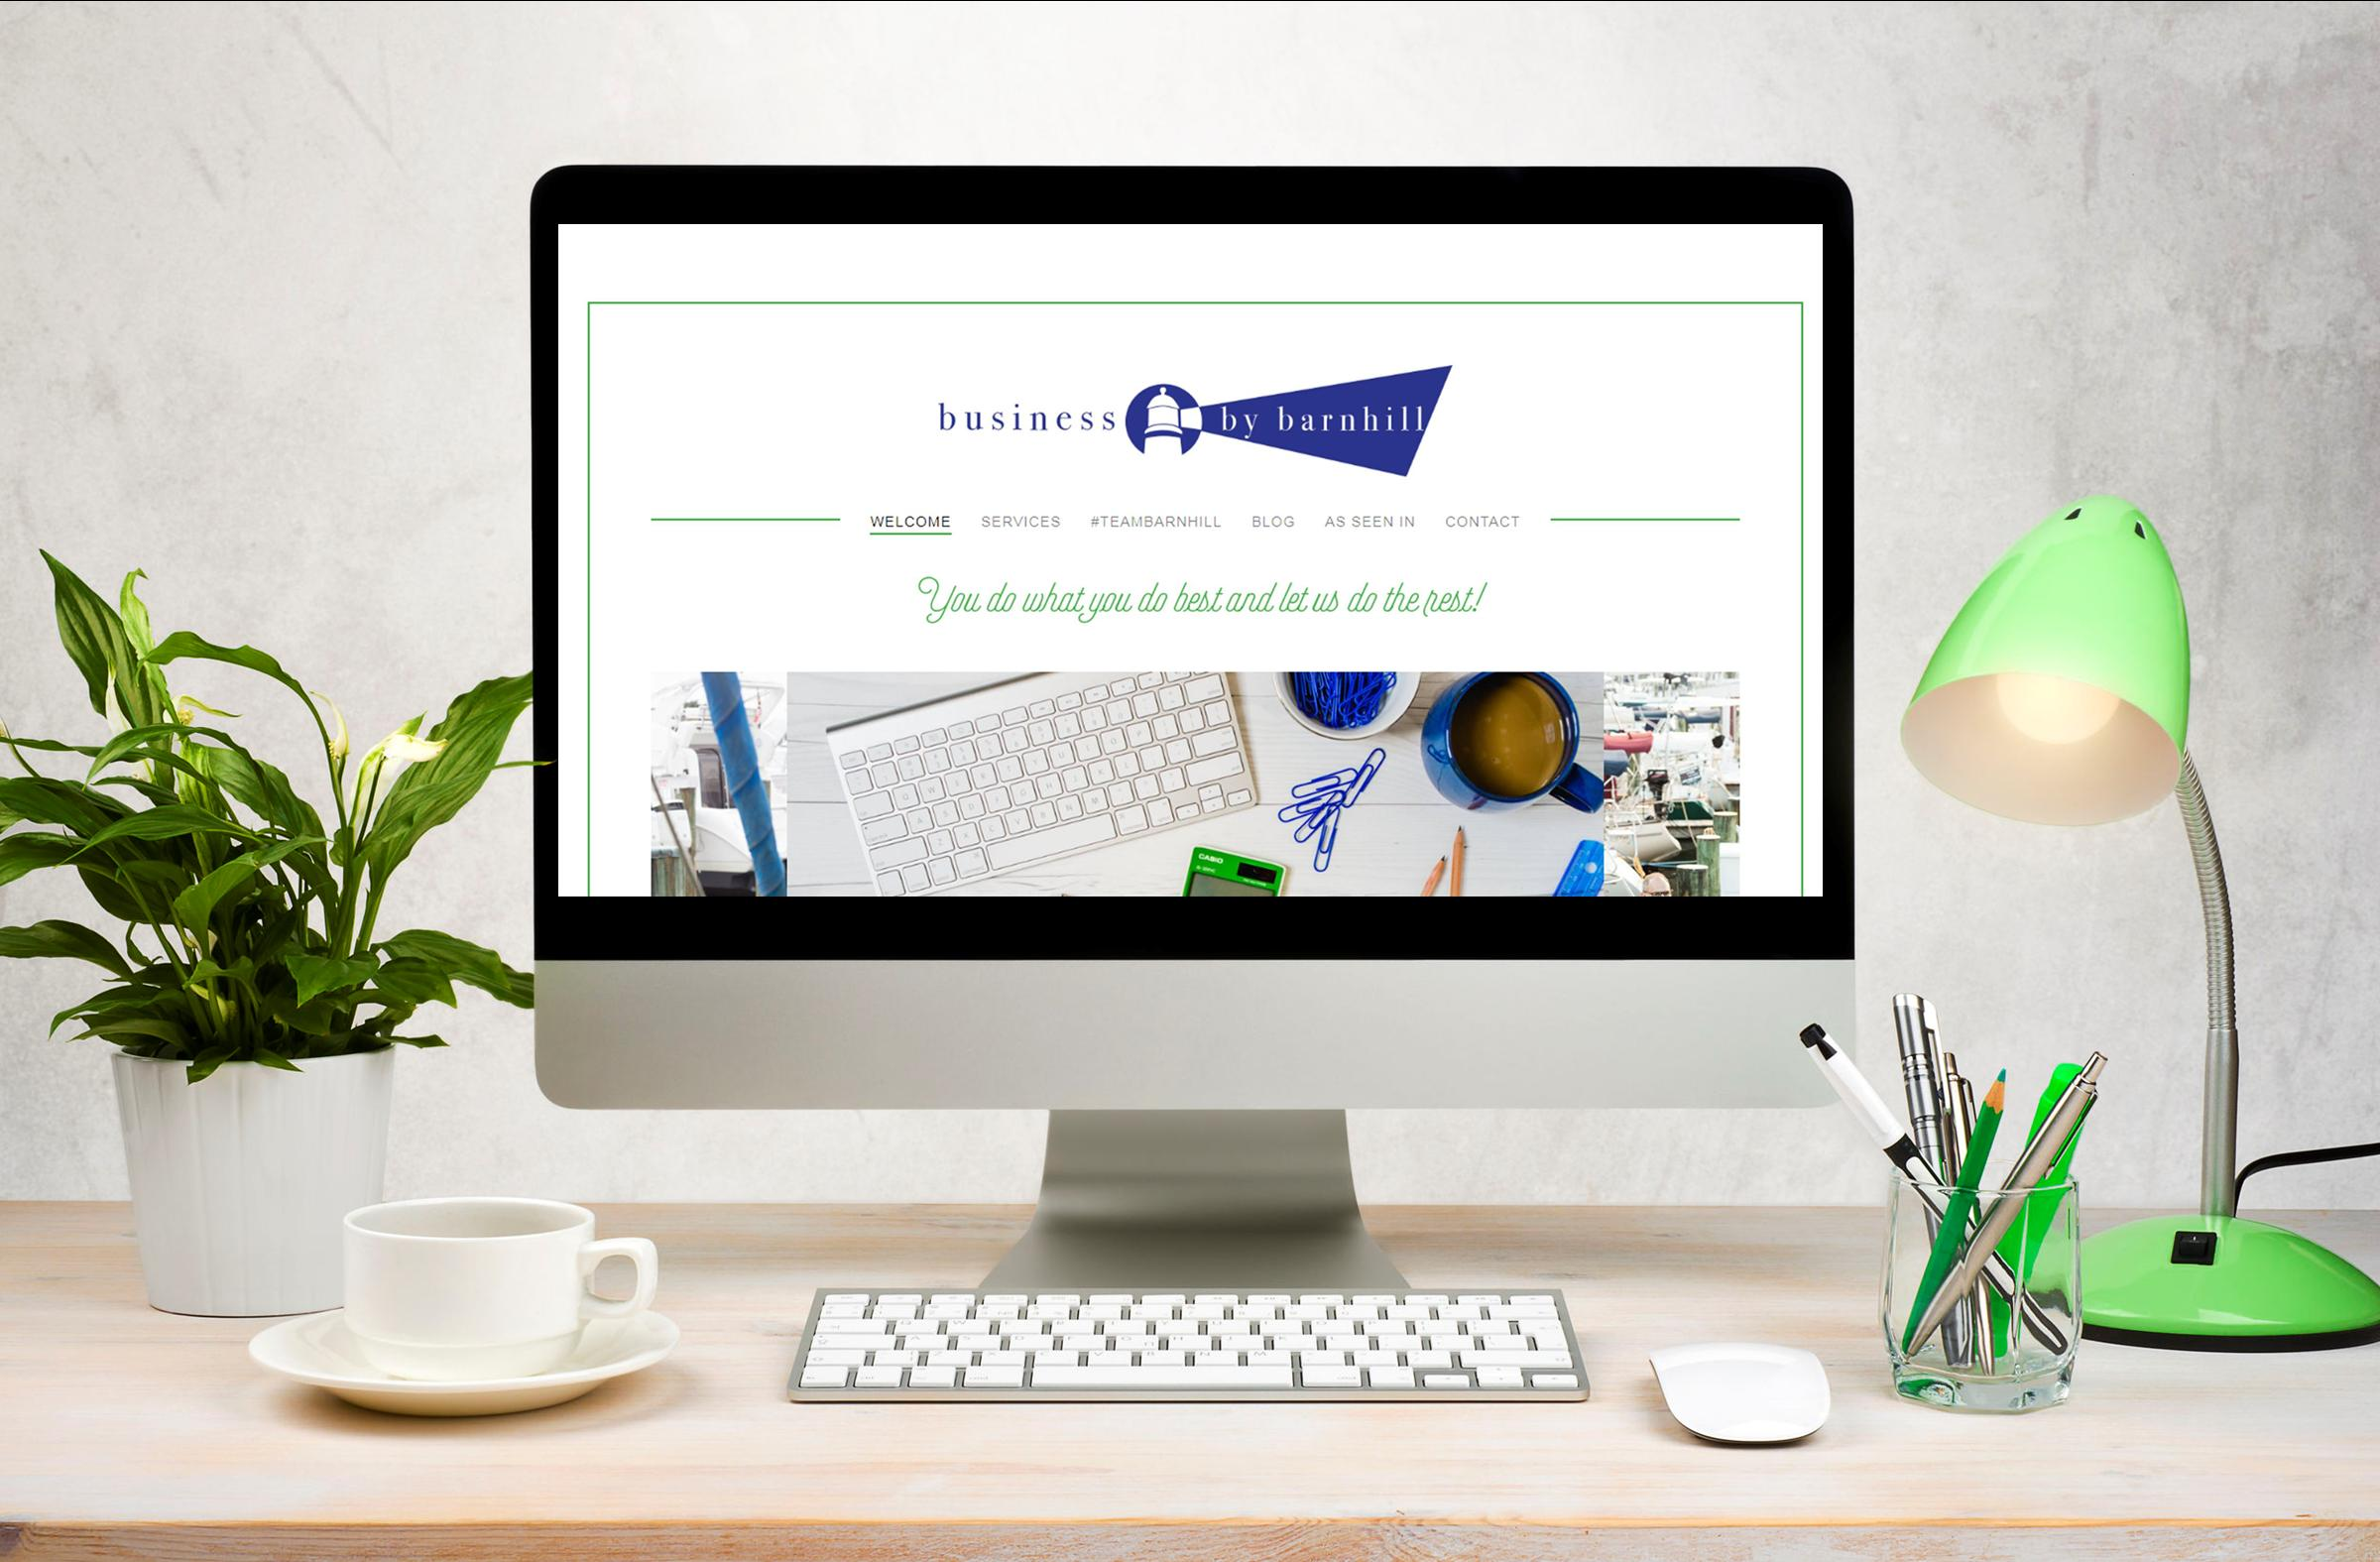 business by barnhill the new website.jpg